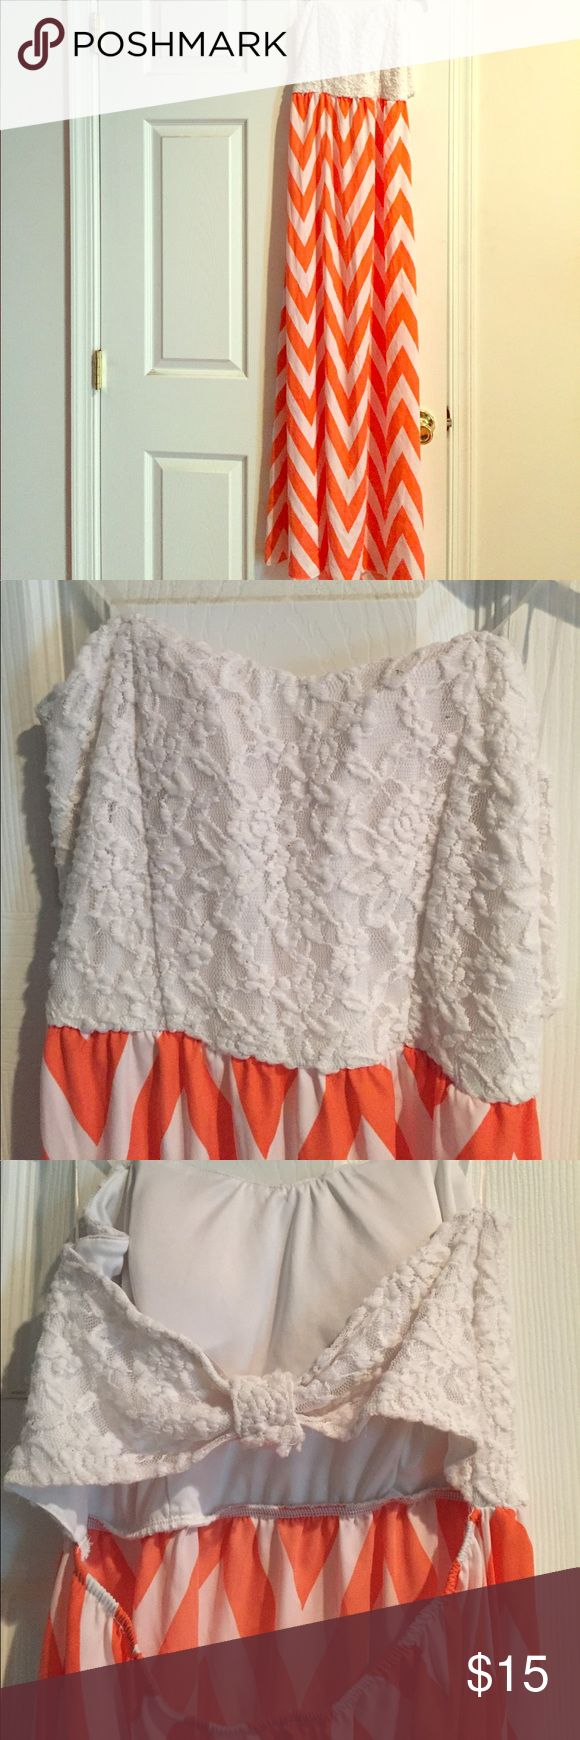 Orange chevron dress Strapless, Beautiful lacy material at the top and orange chevron dress. Picture of back in photos. Size 7-9 Dresses Maxi